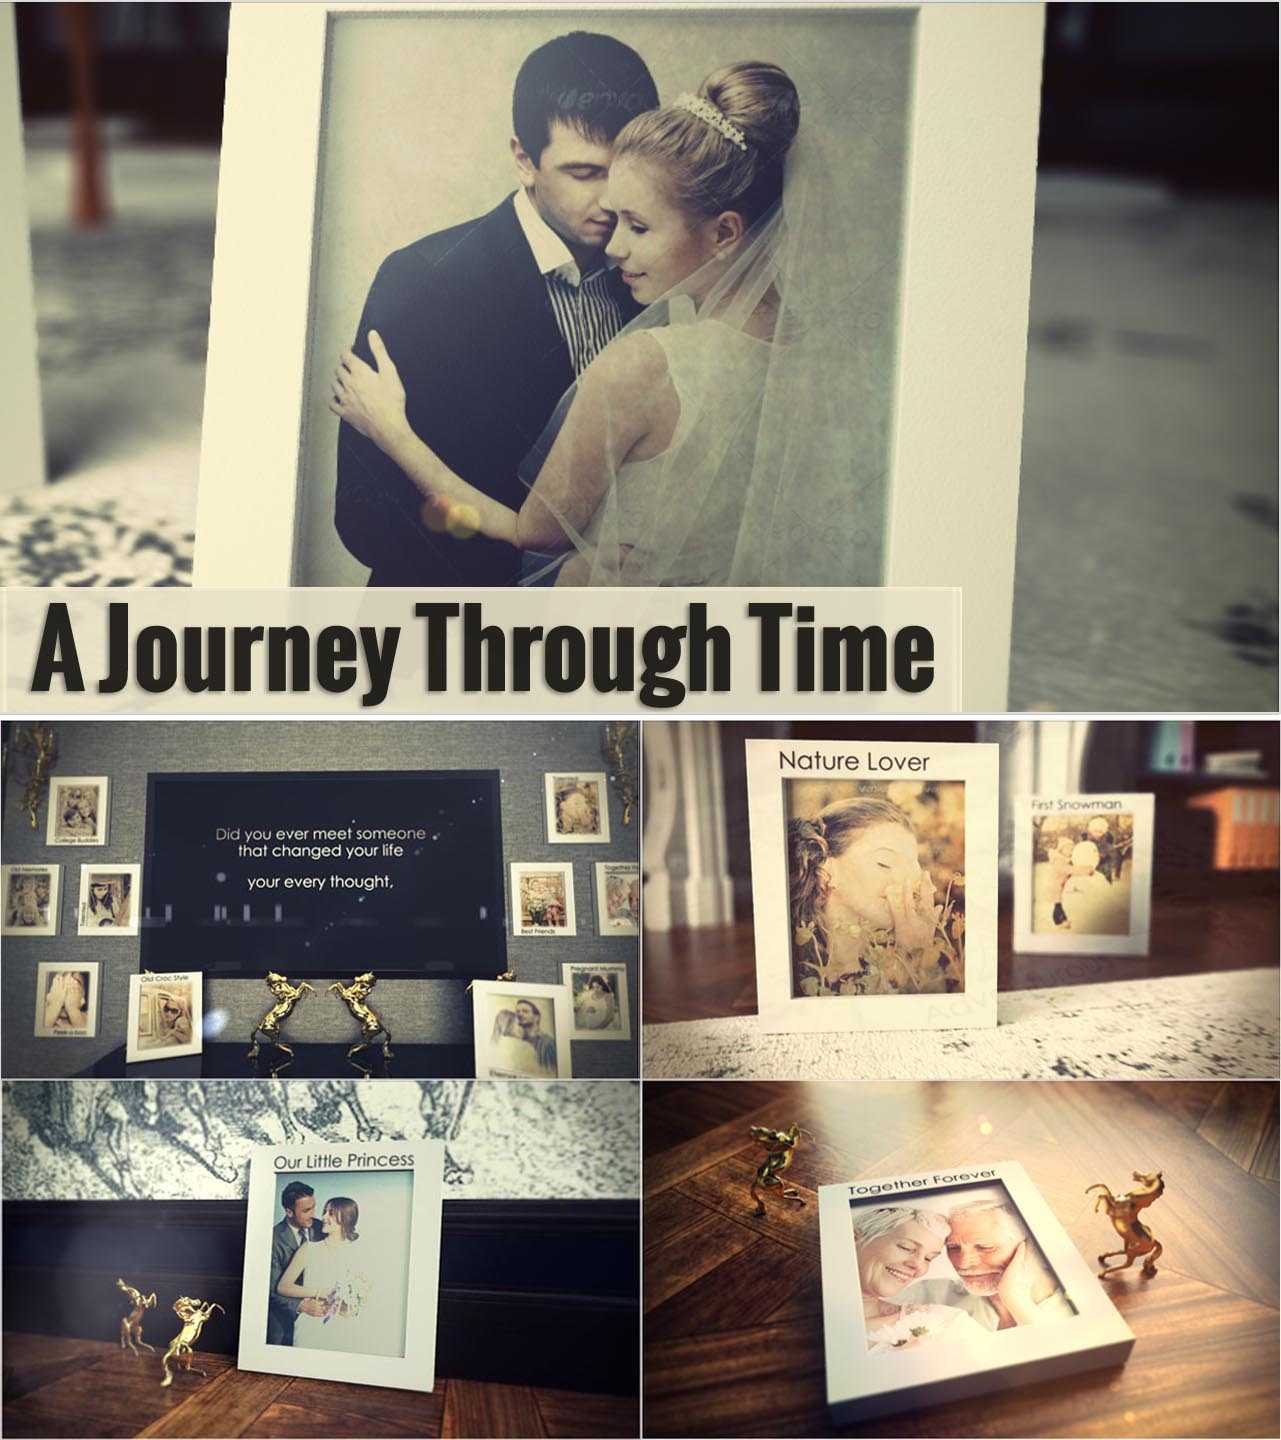 A Journey Through Time Image Gallery